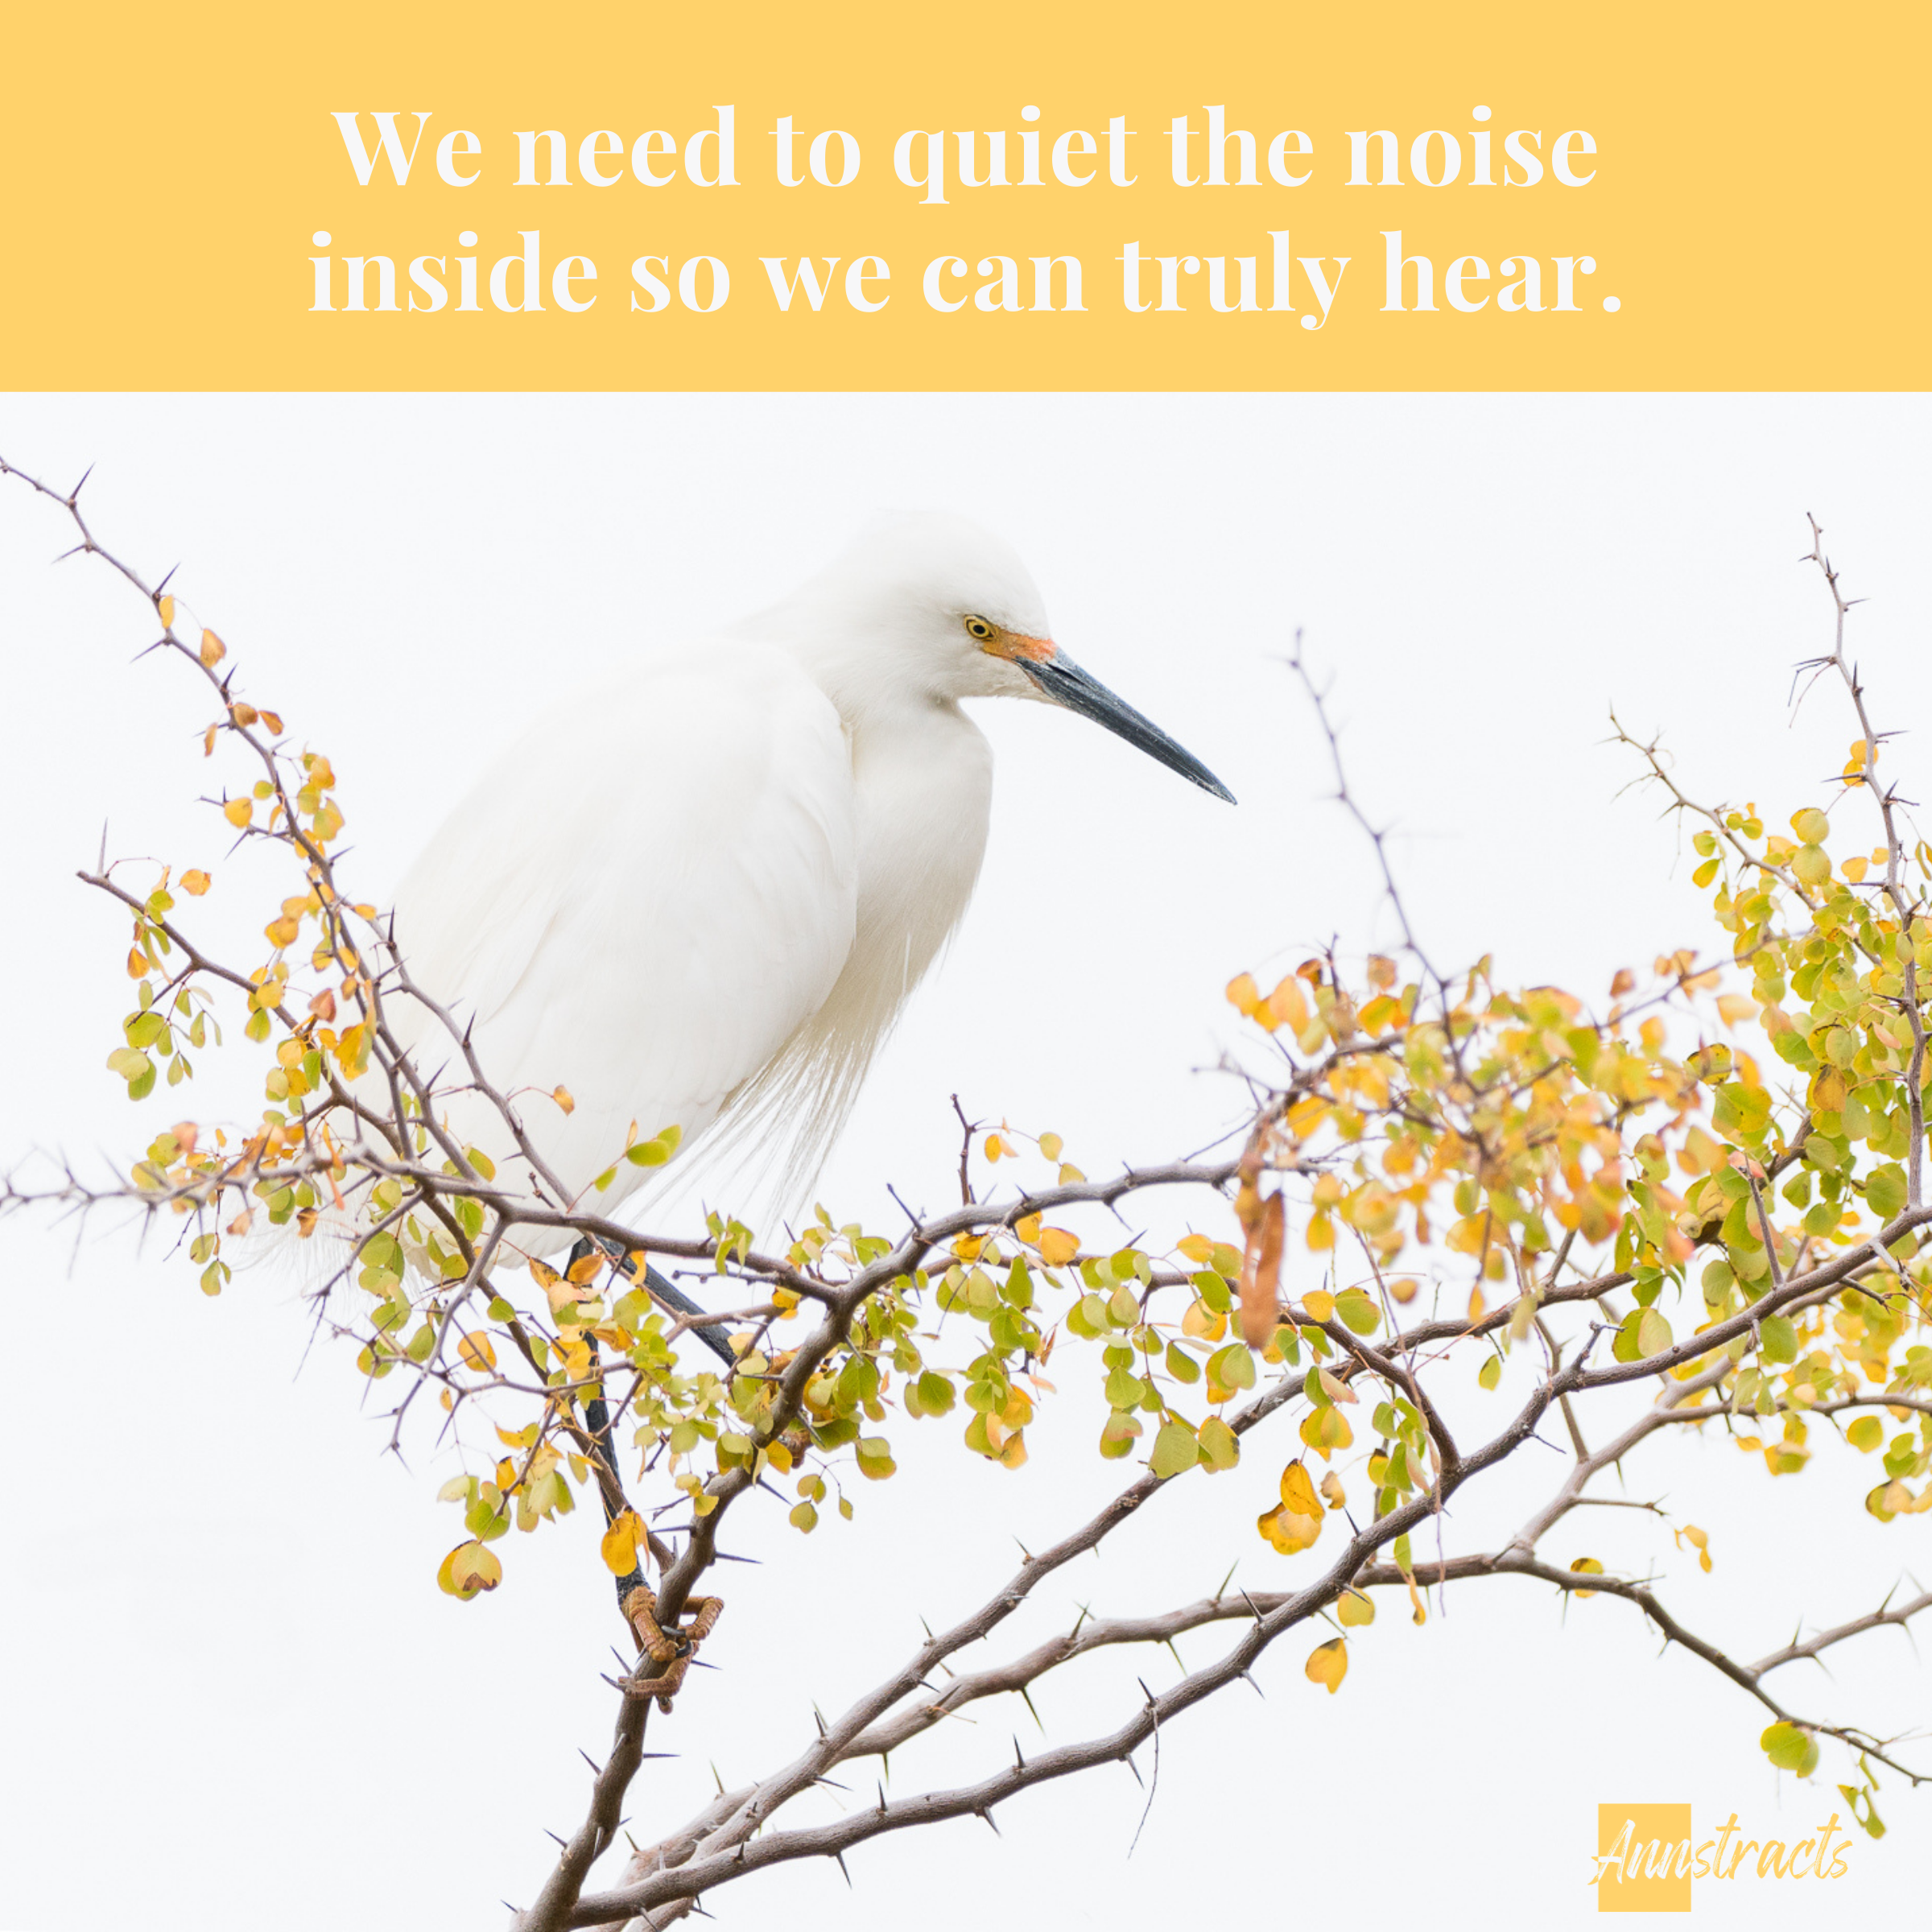 An egret sits in a tree quietly and a quote expresses the need to have a quiet mind.